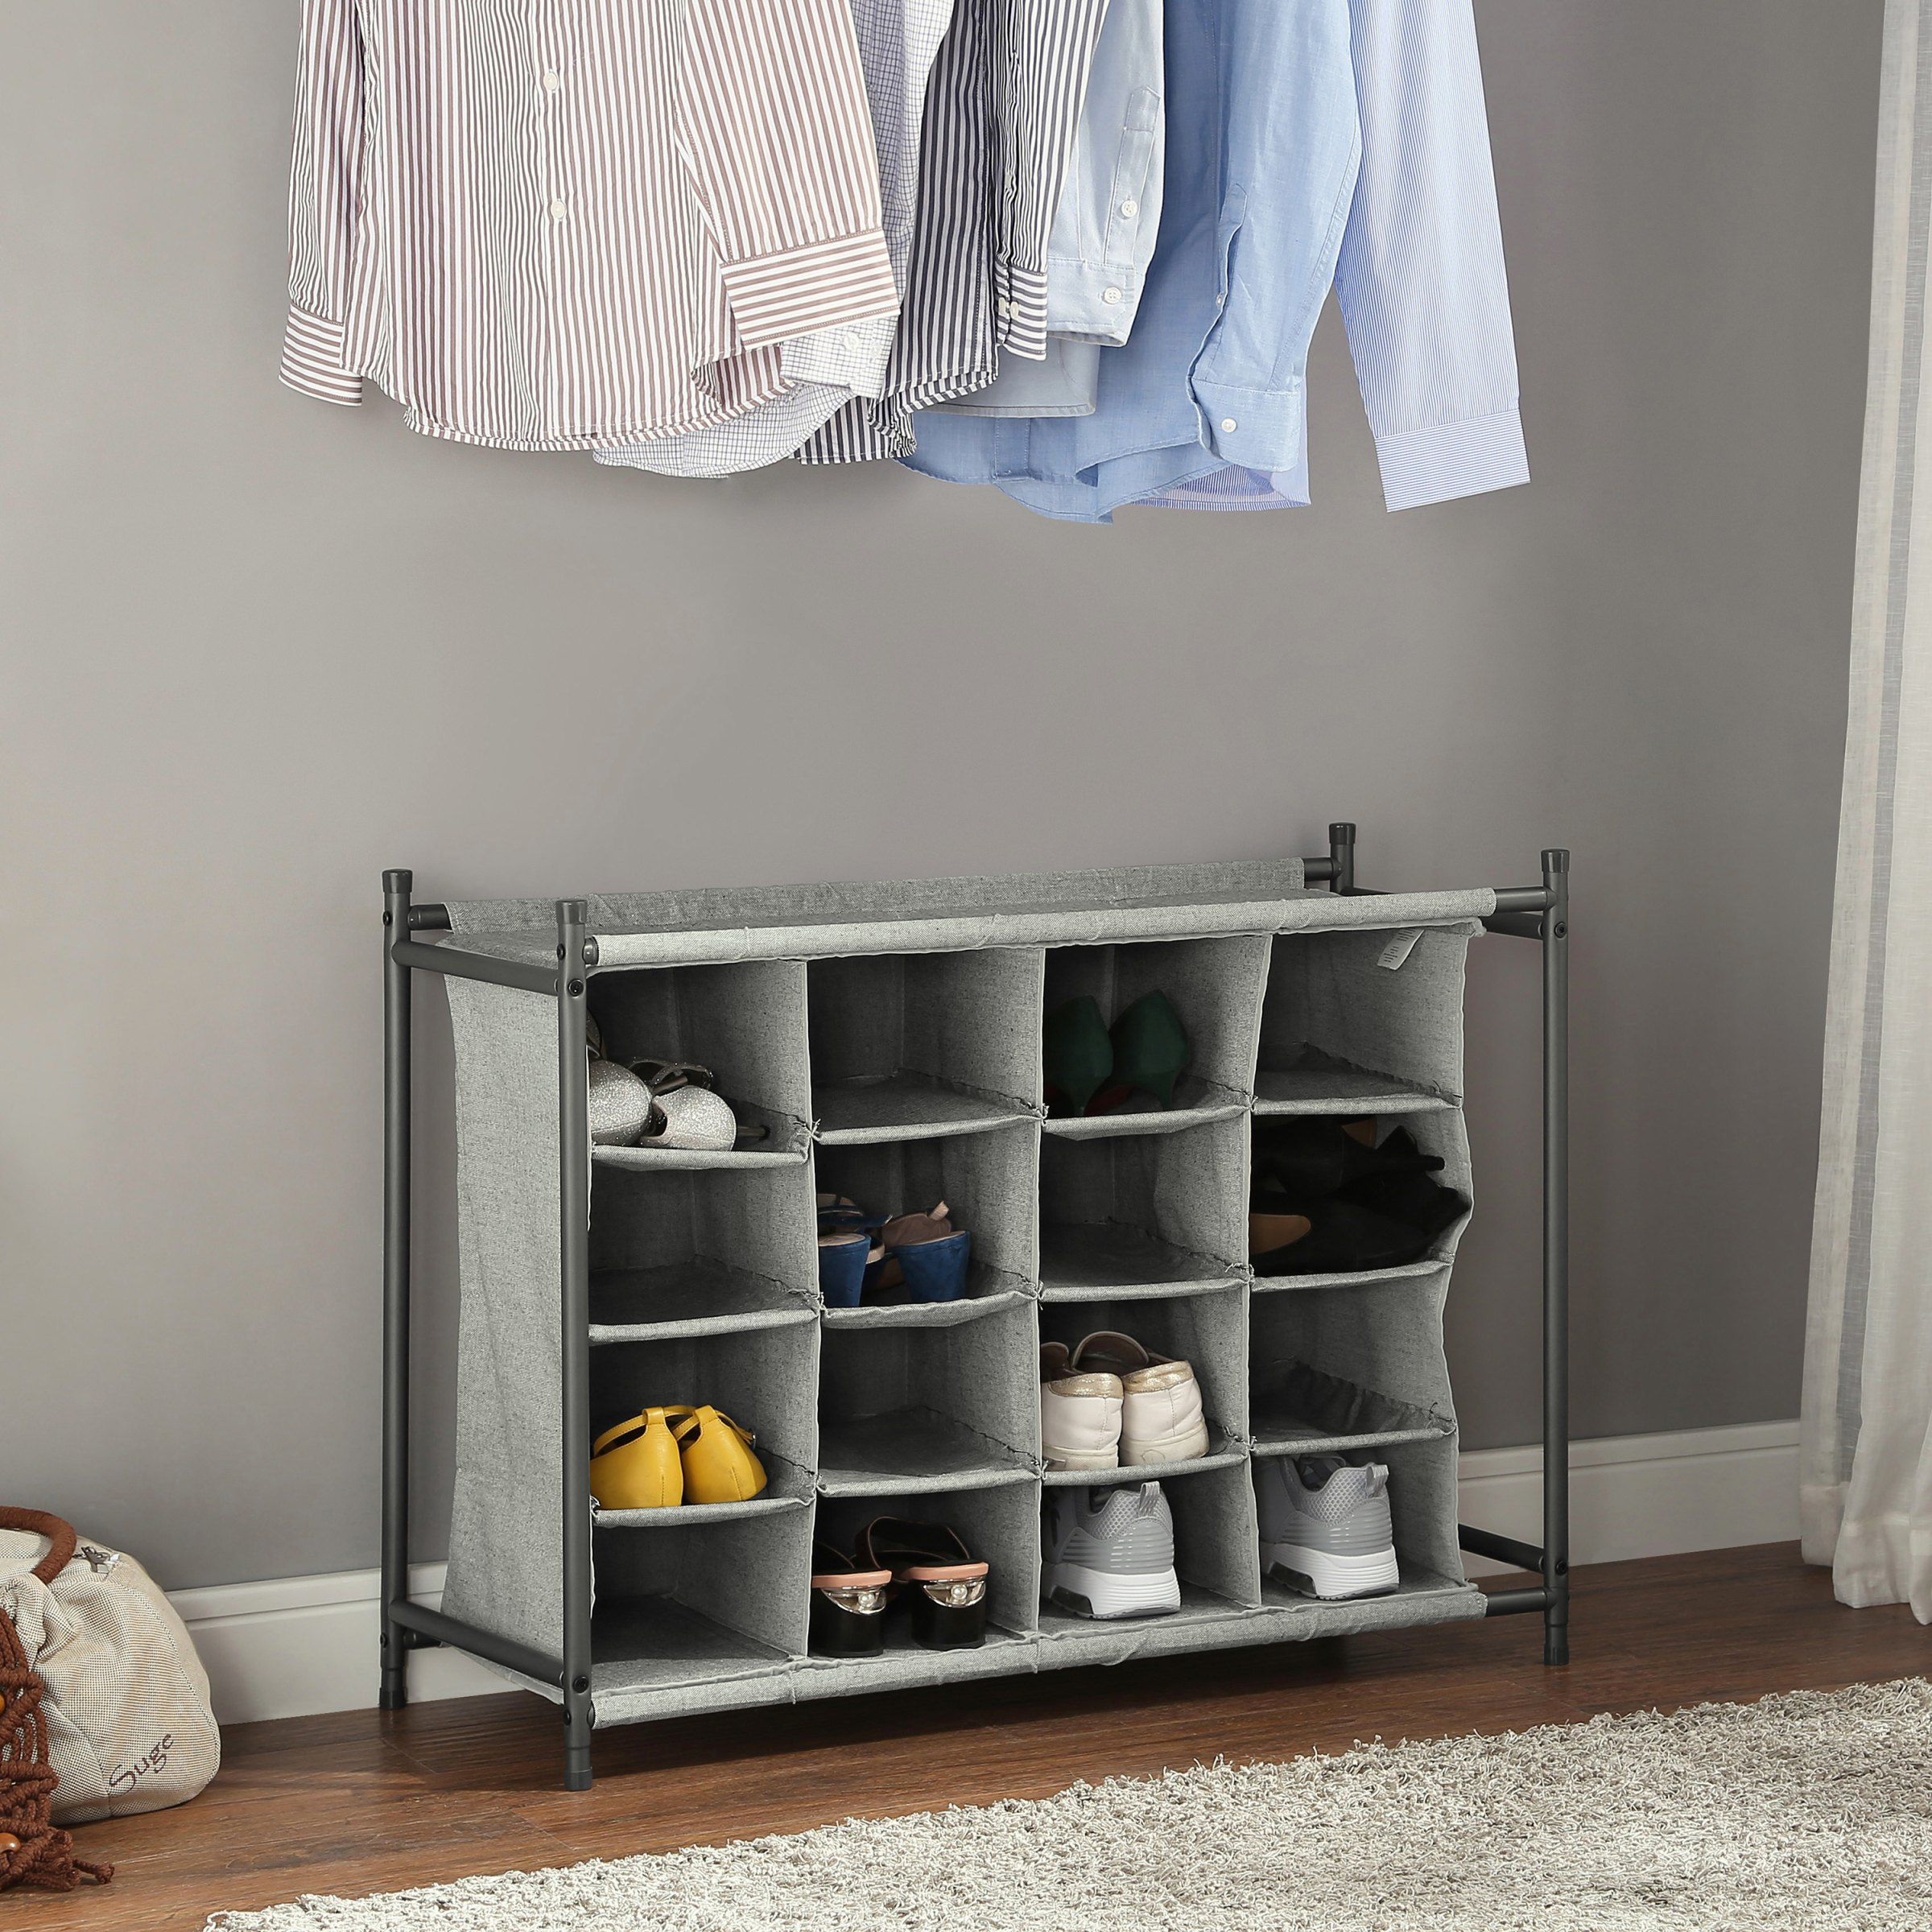 Better Homes & Gardens Charleston Collection 4 Tier 16 Cubby 16-Pair Shoe Organizer, Multiple Colors, 4 Count